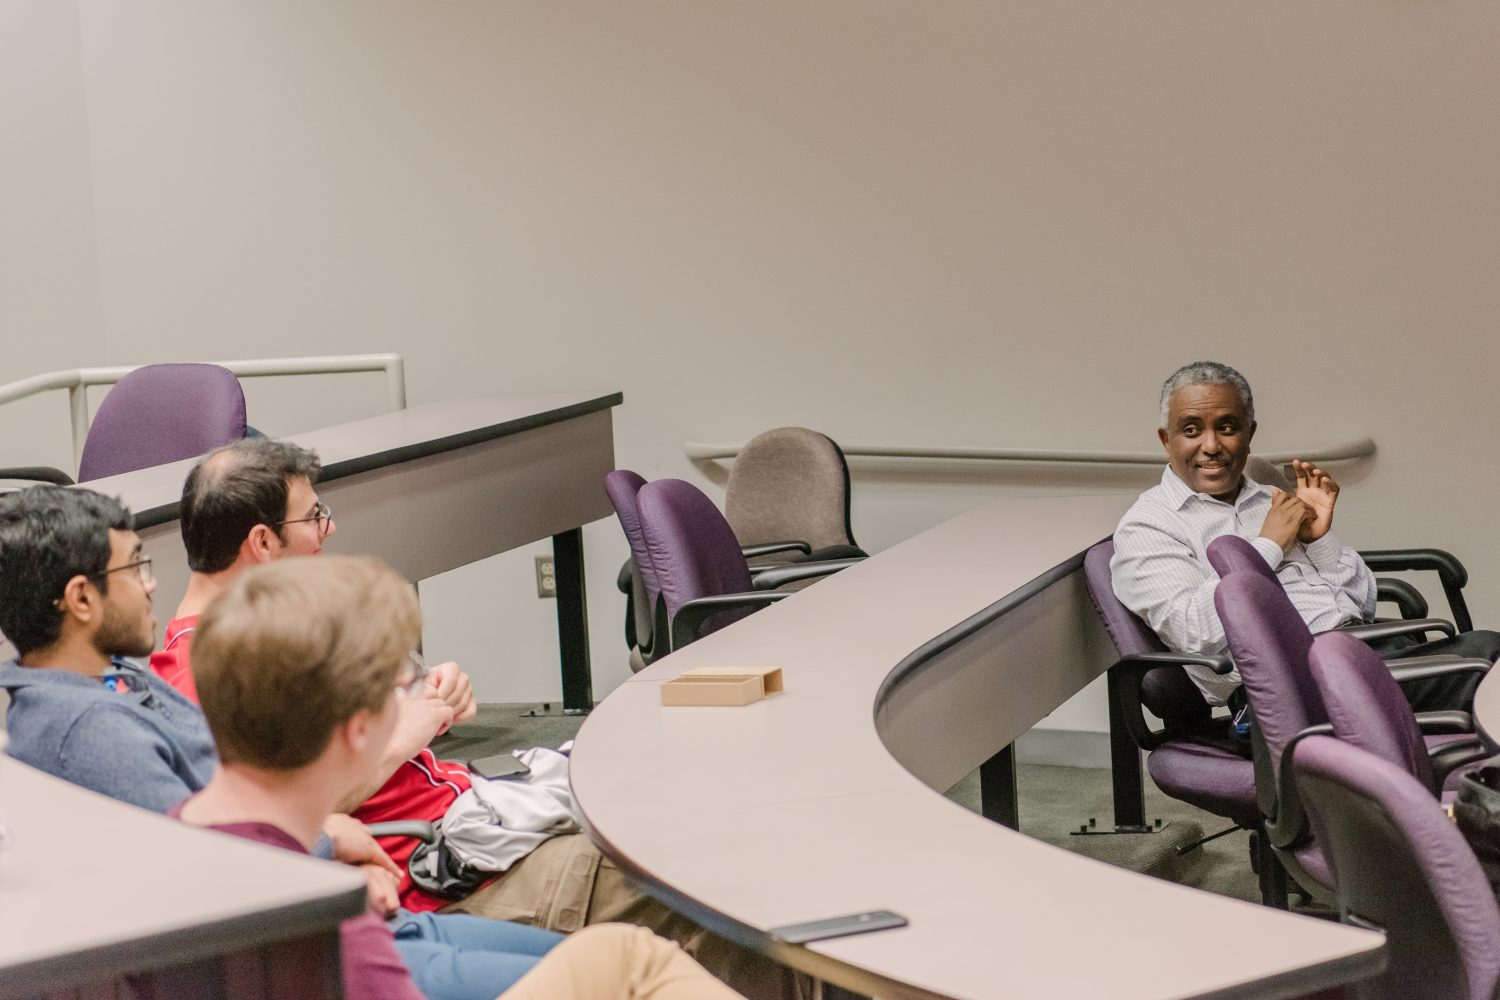 Demoz engages his students in robust discussions about their research. Photo by Marlayna Demond '11.